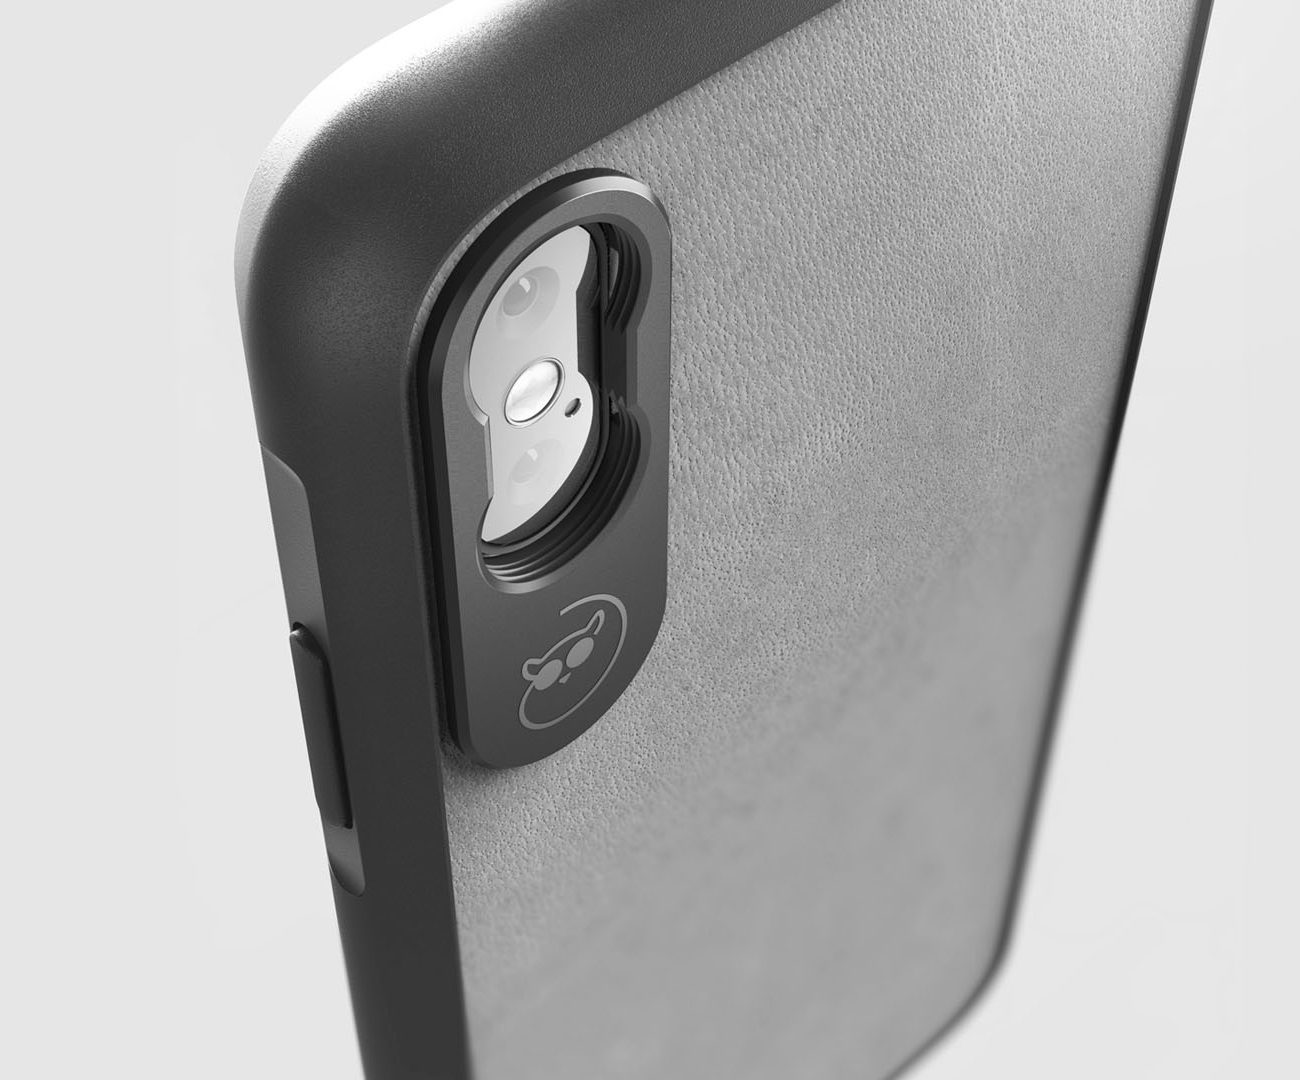 iphone bumper case and photography lenses designed by Hamid Bekradi for iphone X, iphone 7 plus iphone 8 plus